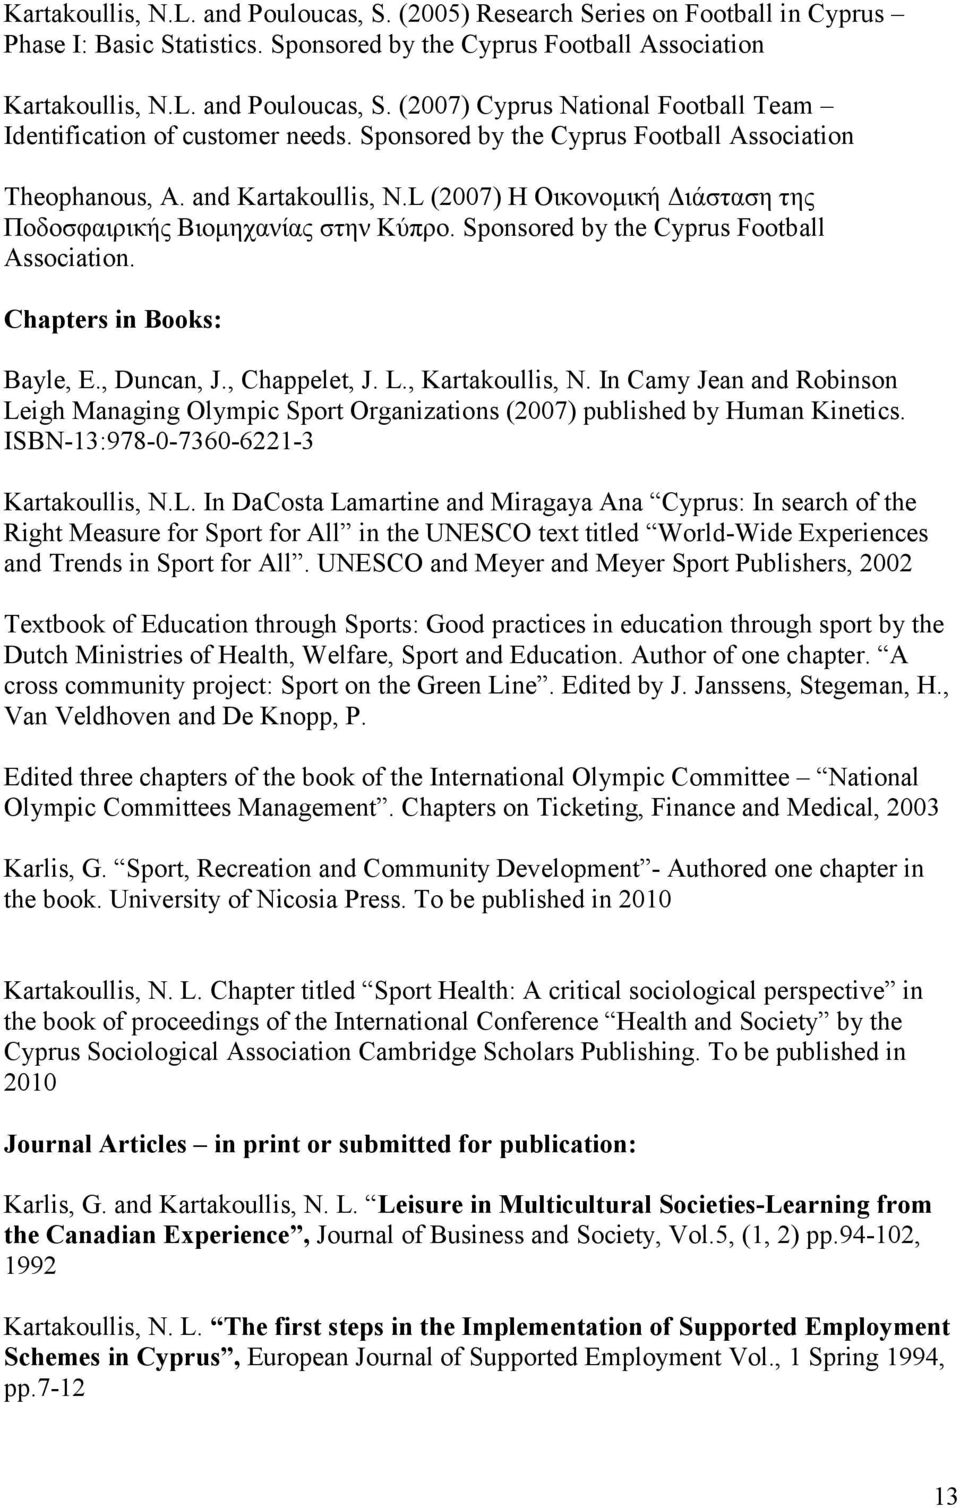 Chapters in Books: Bayle, E., Duncan, J., Chappelet, J. L., Kartakoullis, N. In Camy Jean and Robinson Leigh Managing Olympic Sport Organizations (2007) published by Human Kinetics.